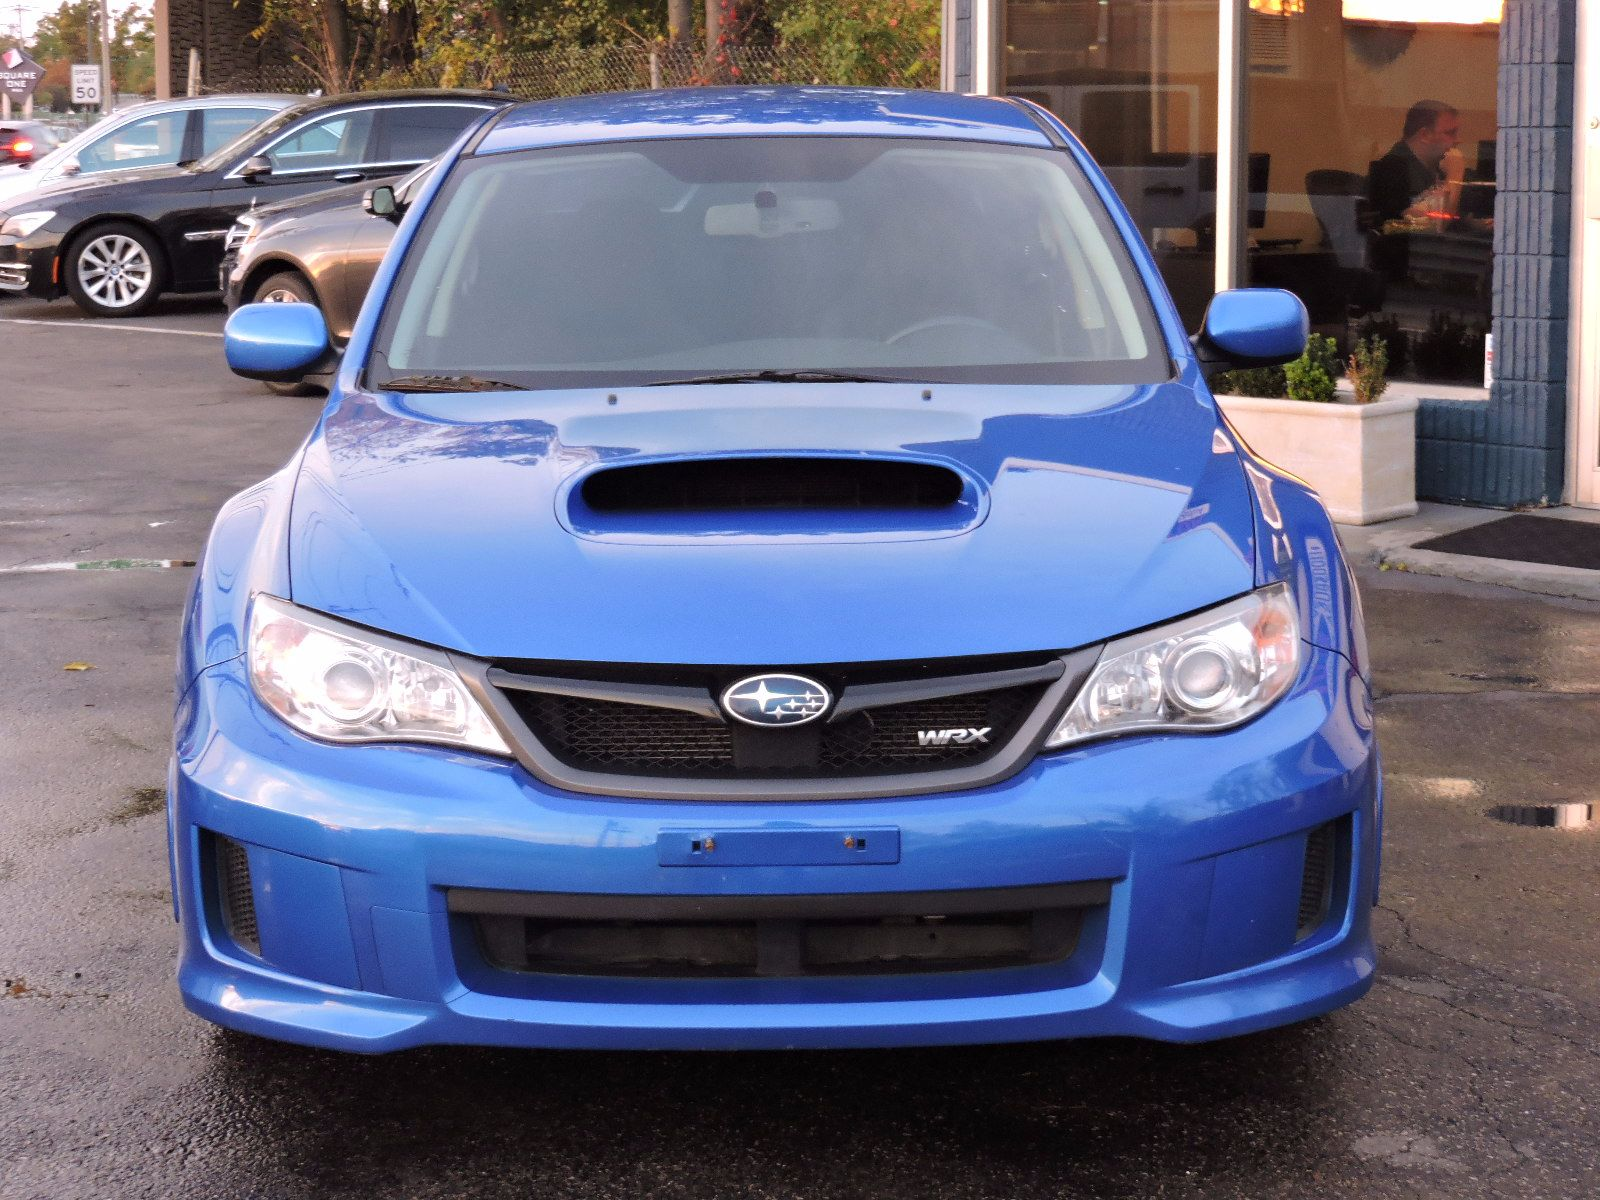 used 2013 subaru impreza wrx wrx at auto house usa saugus. Black Bedroom Furniture Sets. Home Design Ideas